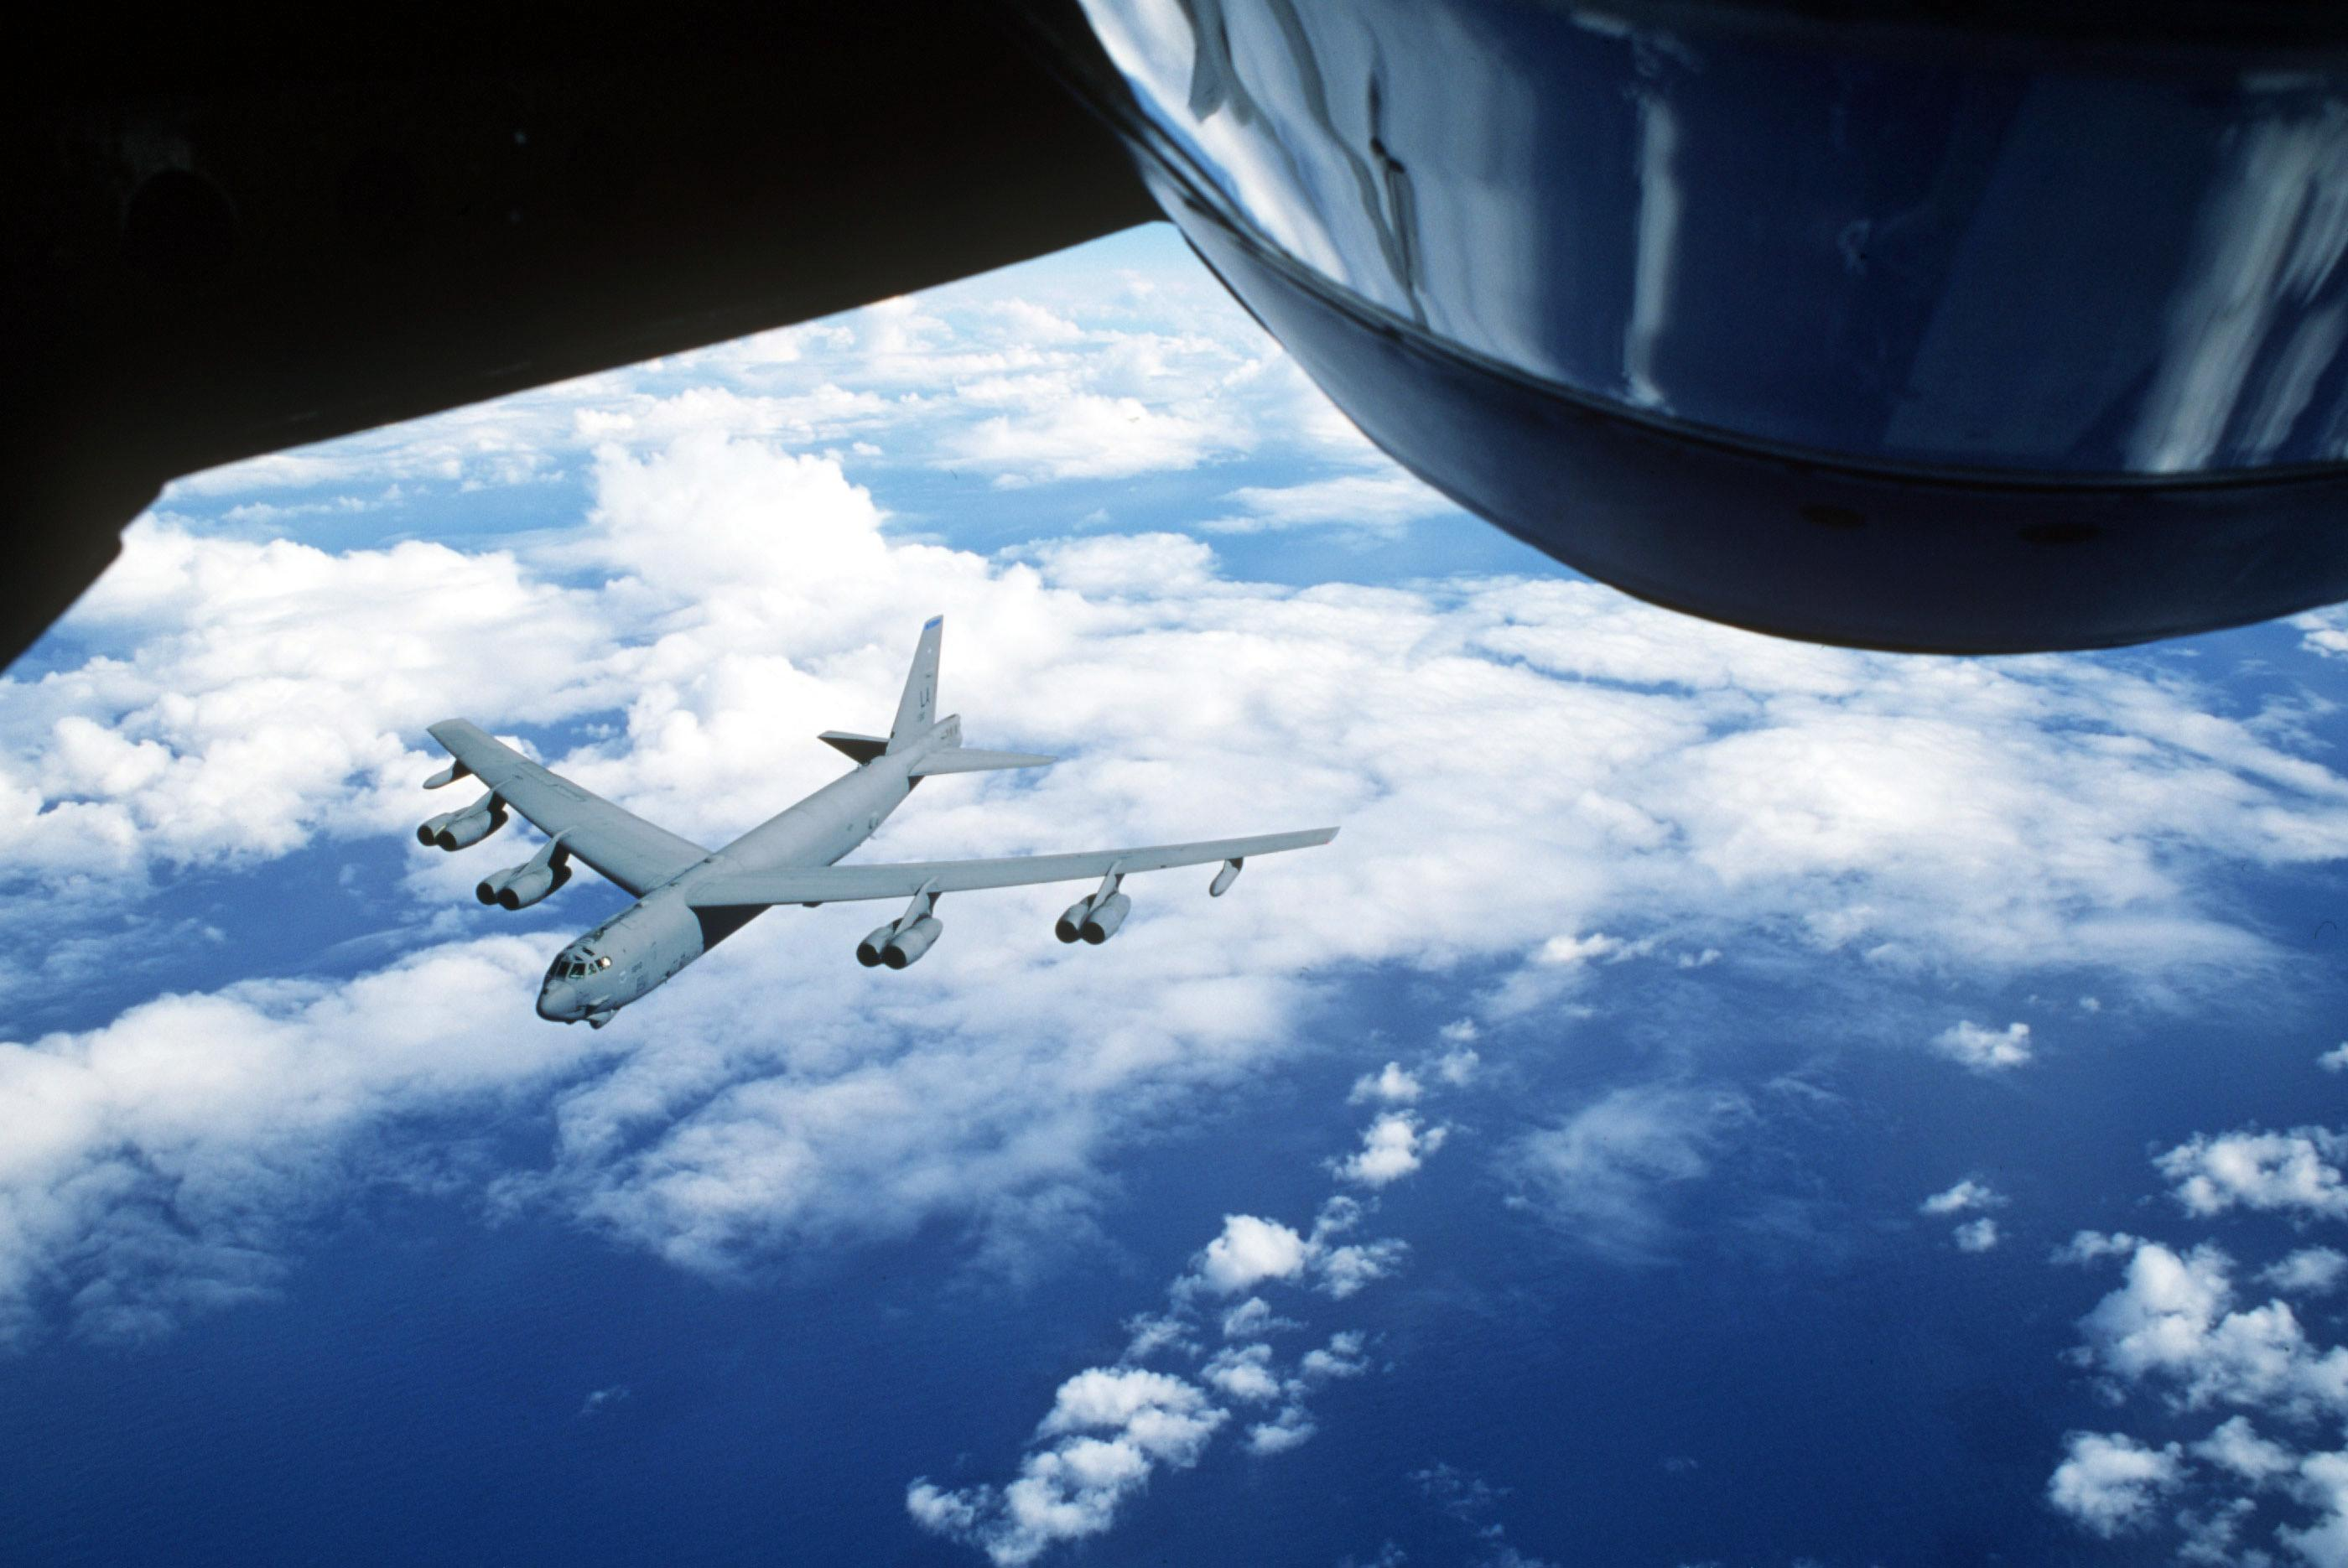 us scaling back bases in europe in cost cutting move